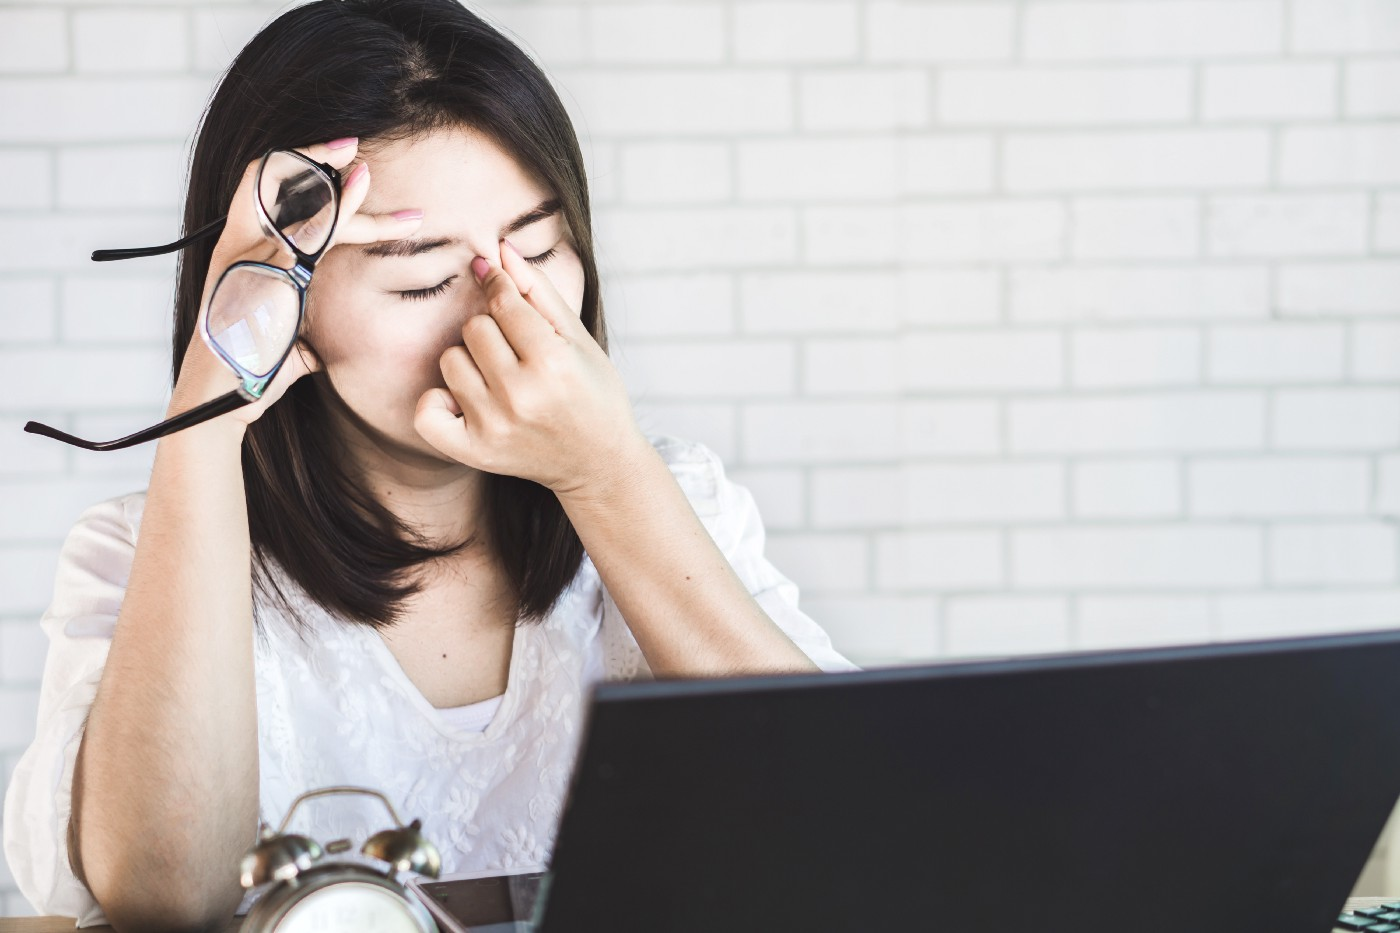 A woman showing discomfort from digital eye strain